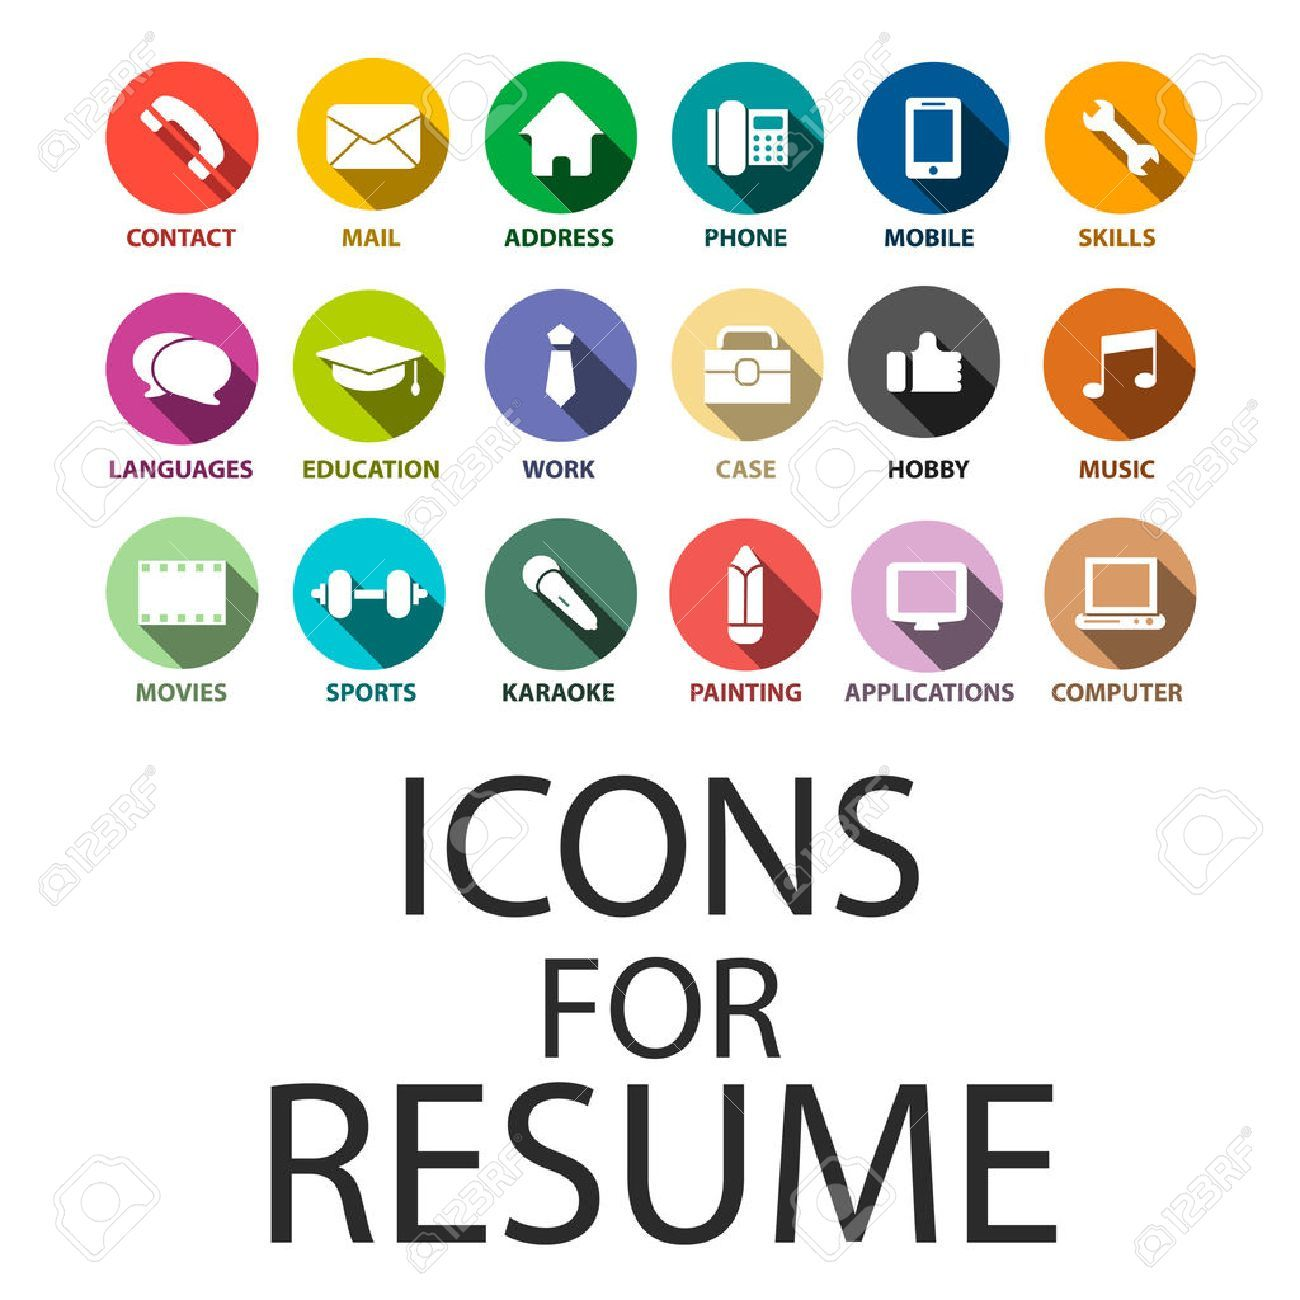 Icons Fur Ihren Lebenslauf Lebenslauf Job Eingestellt Graphic Design Resume Resume Icon